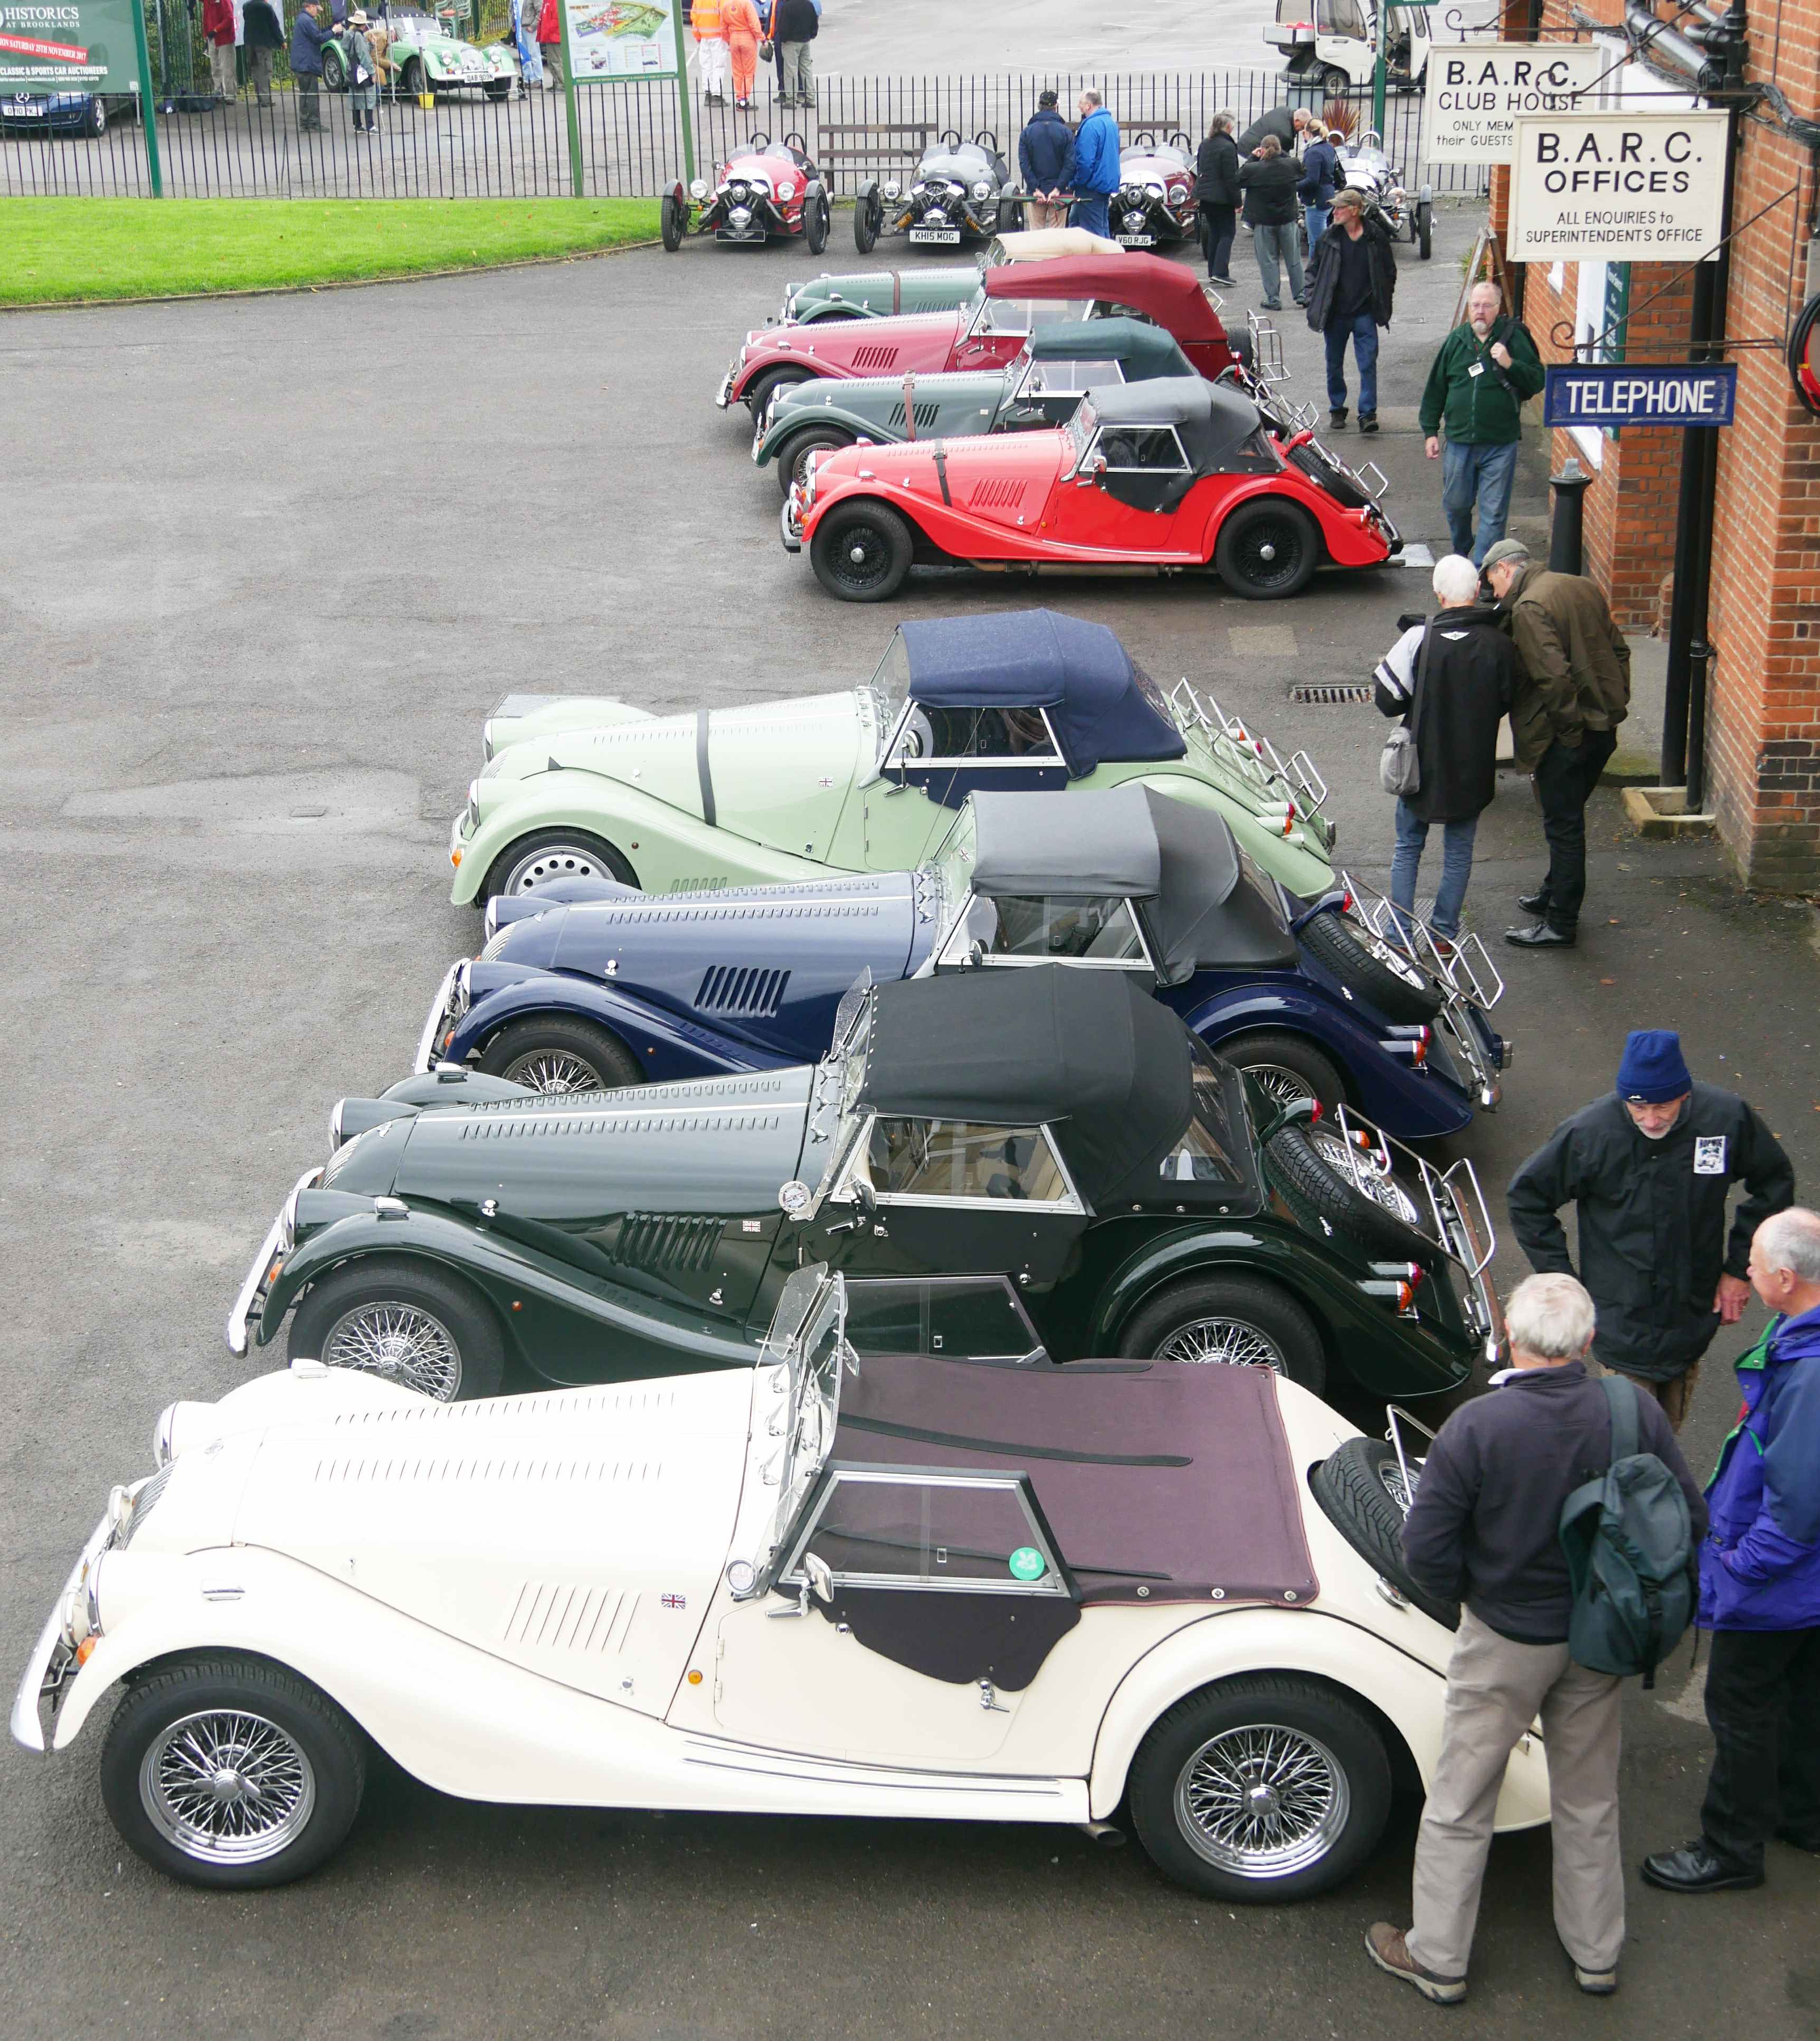 Eight old style Morgans in a line.